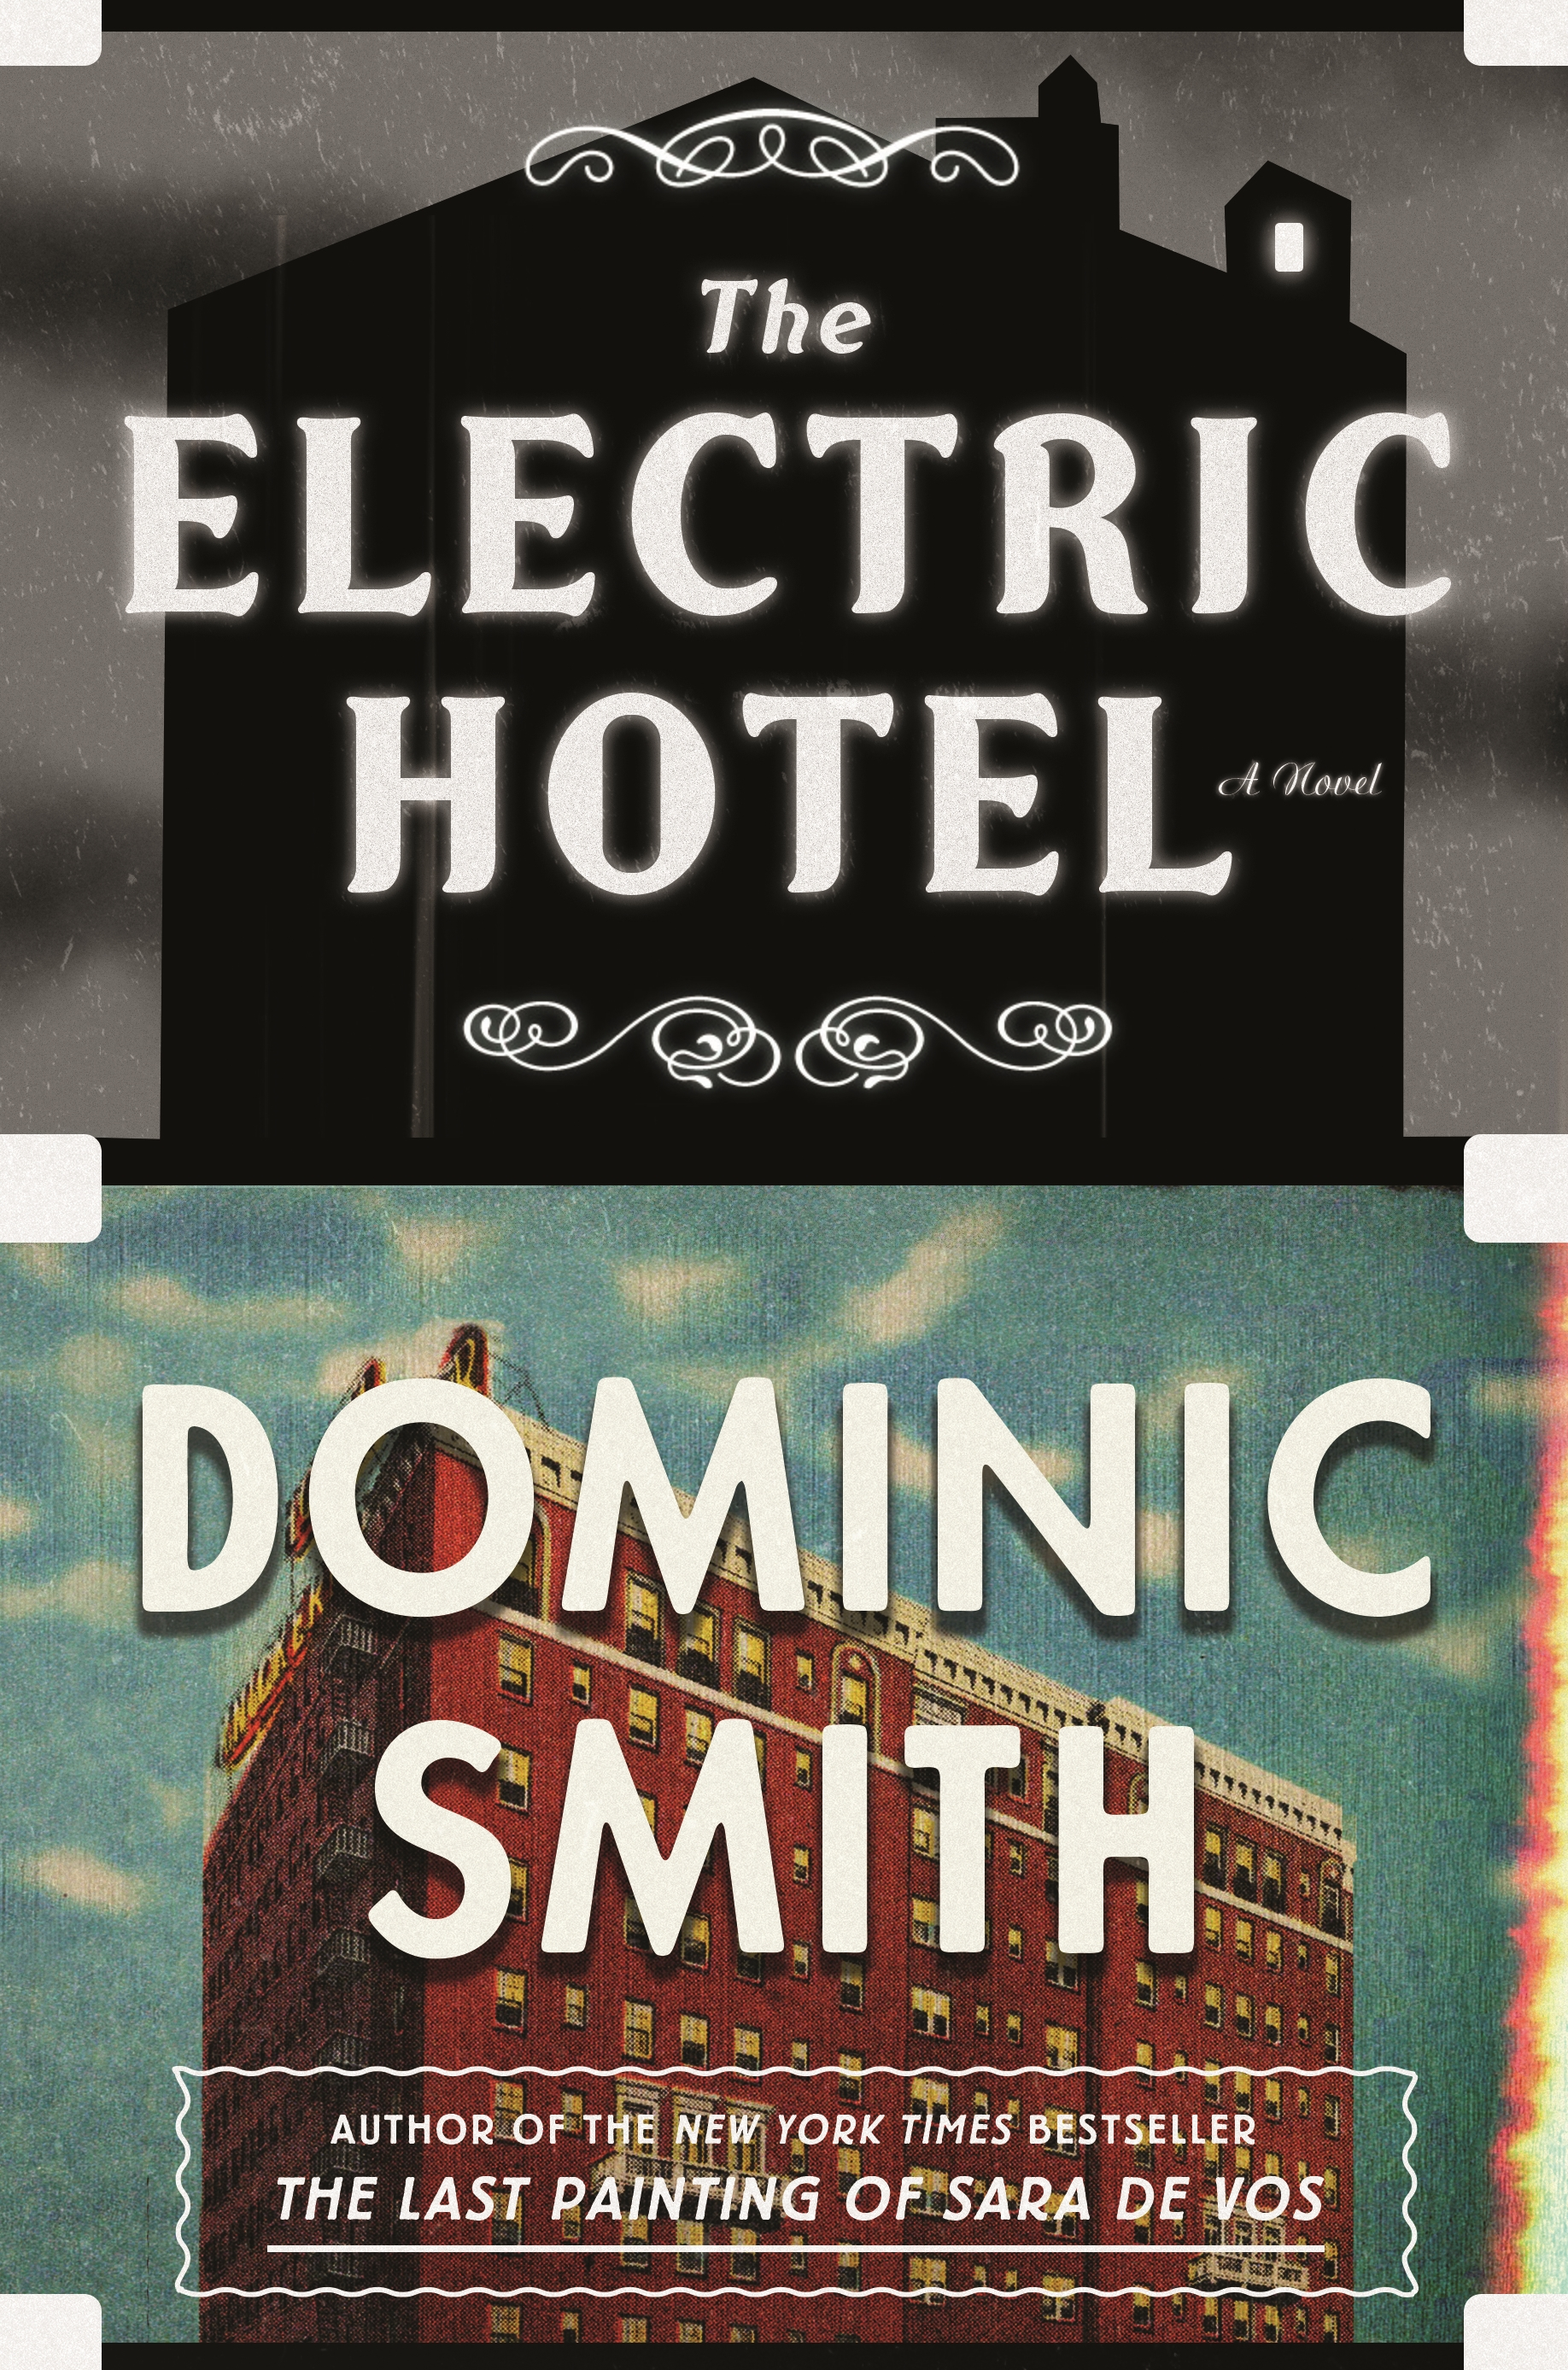 Review Perils Of Reading History >> The Electric Hotel By Dominic Smith Book Review The